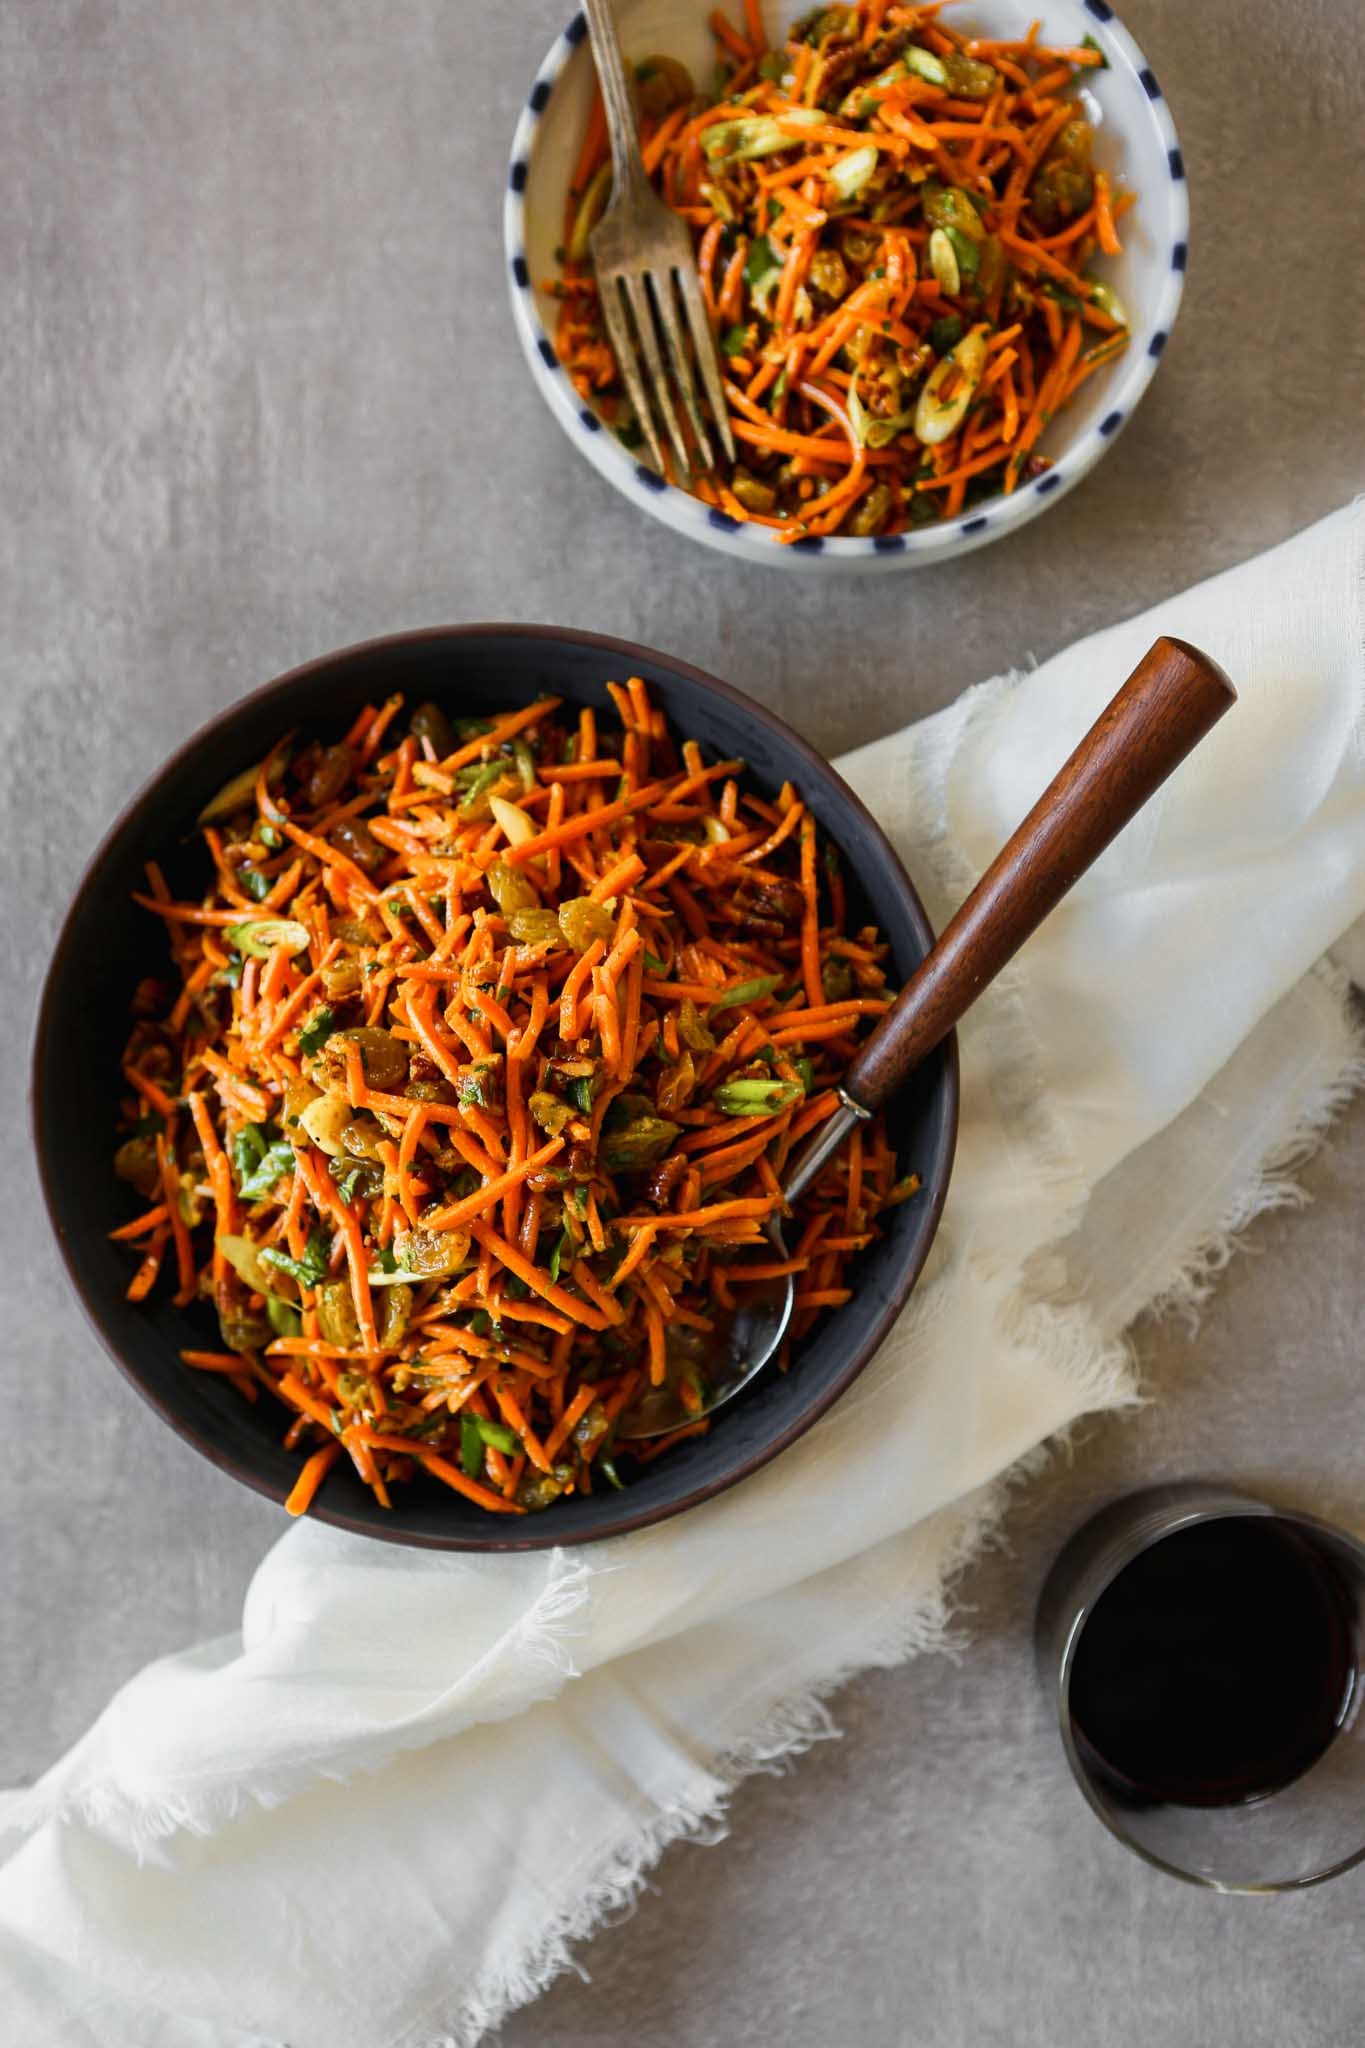 Photograph of shredded Moroccan carrot salad in a dark blue bowl set on a gray table.